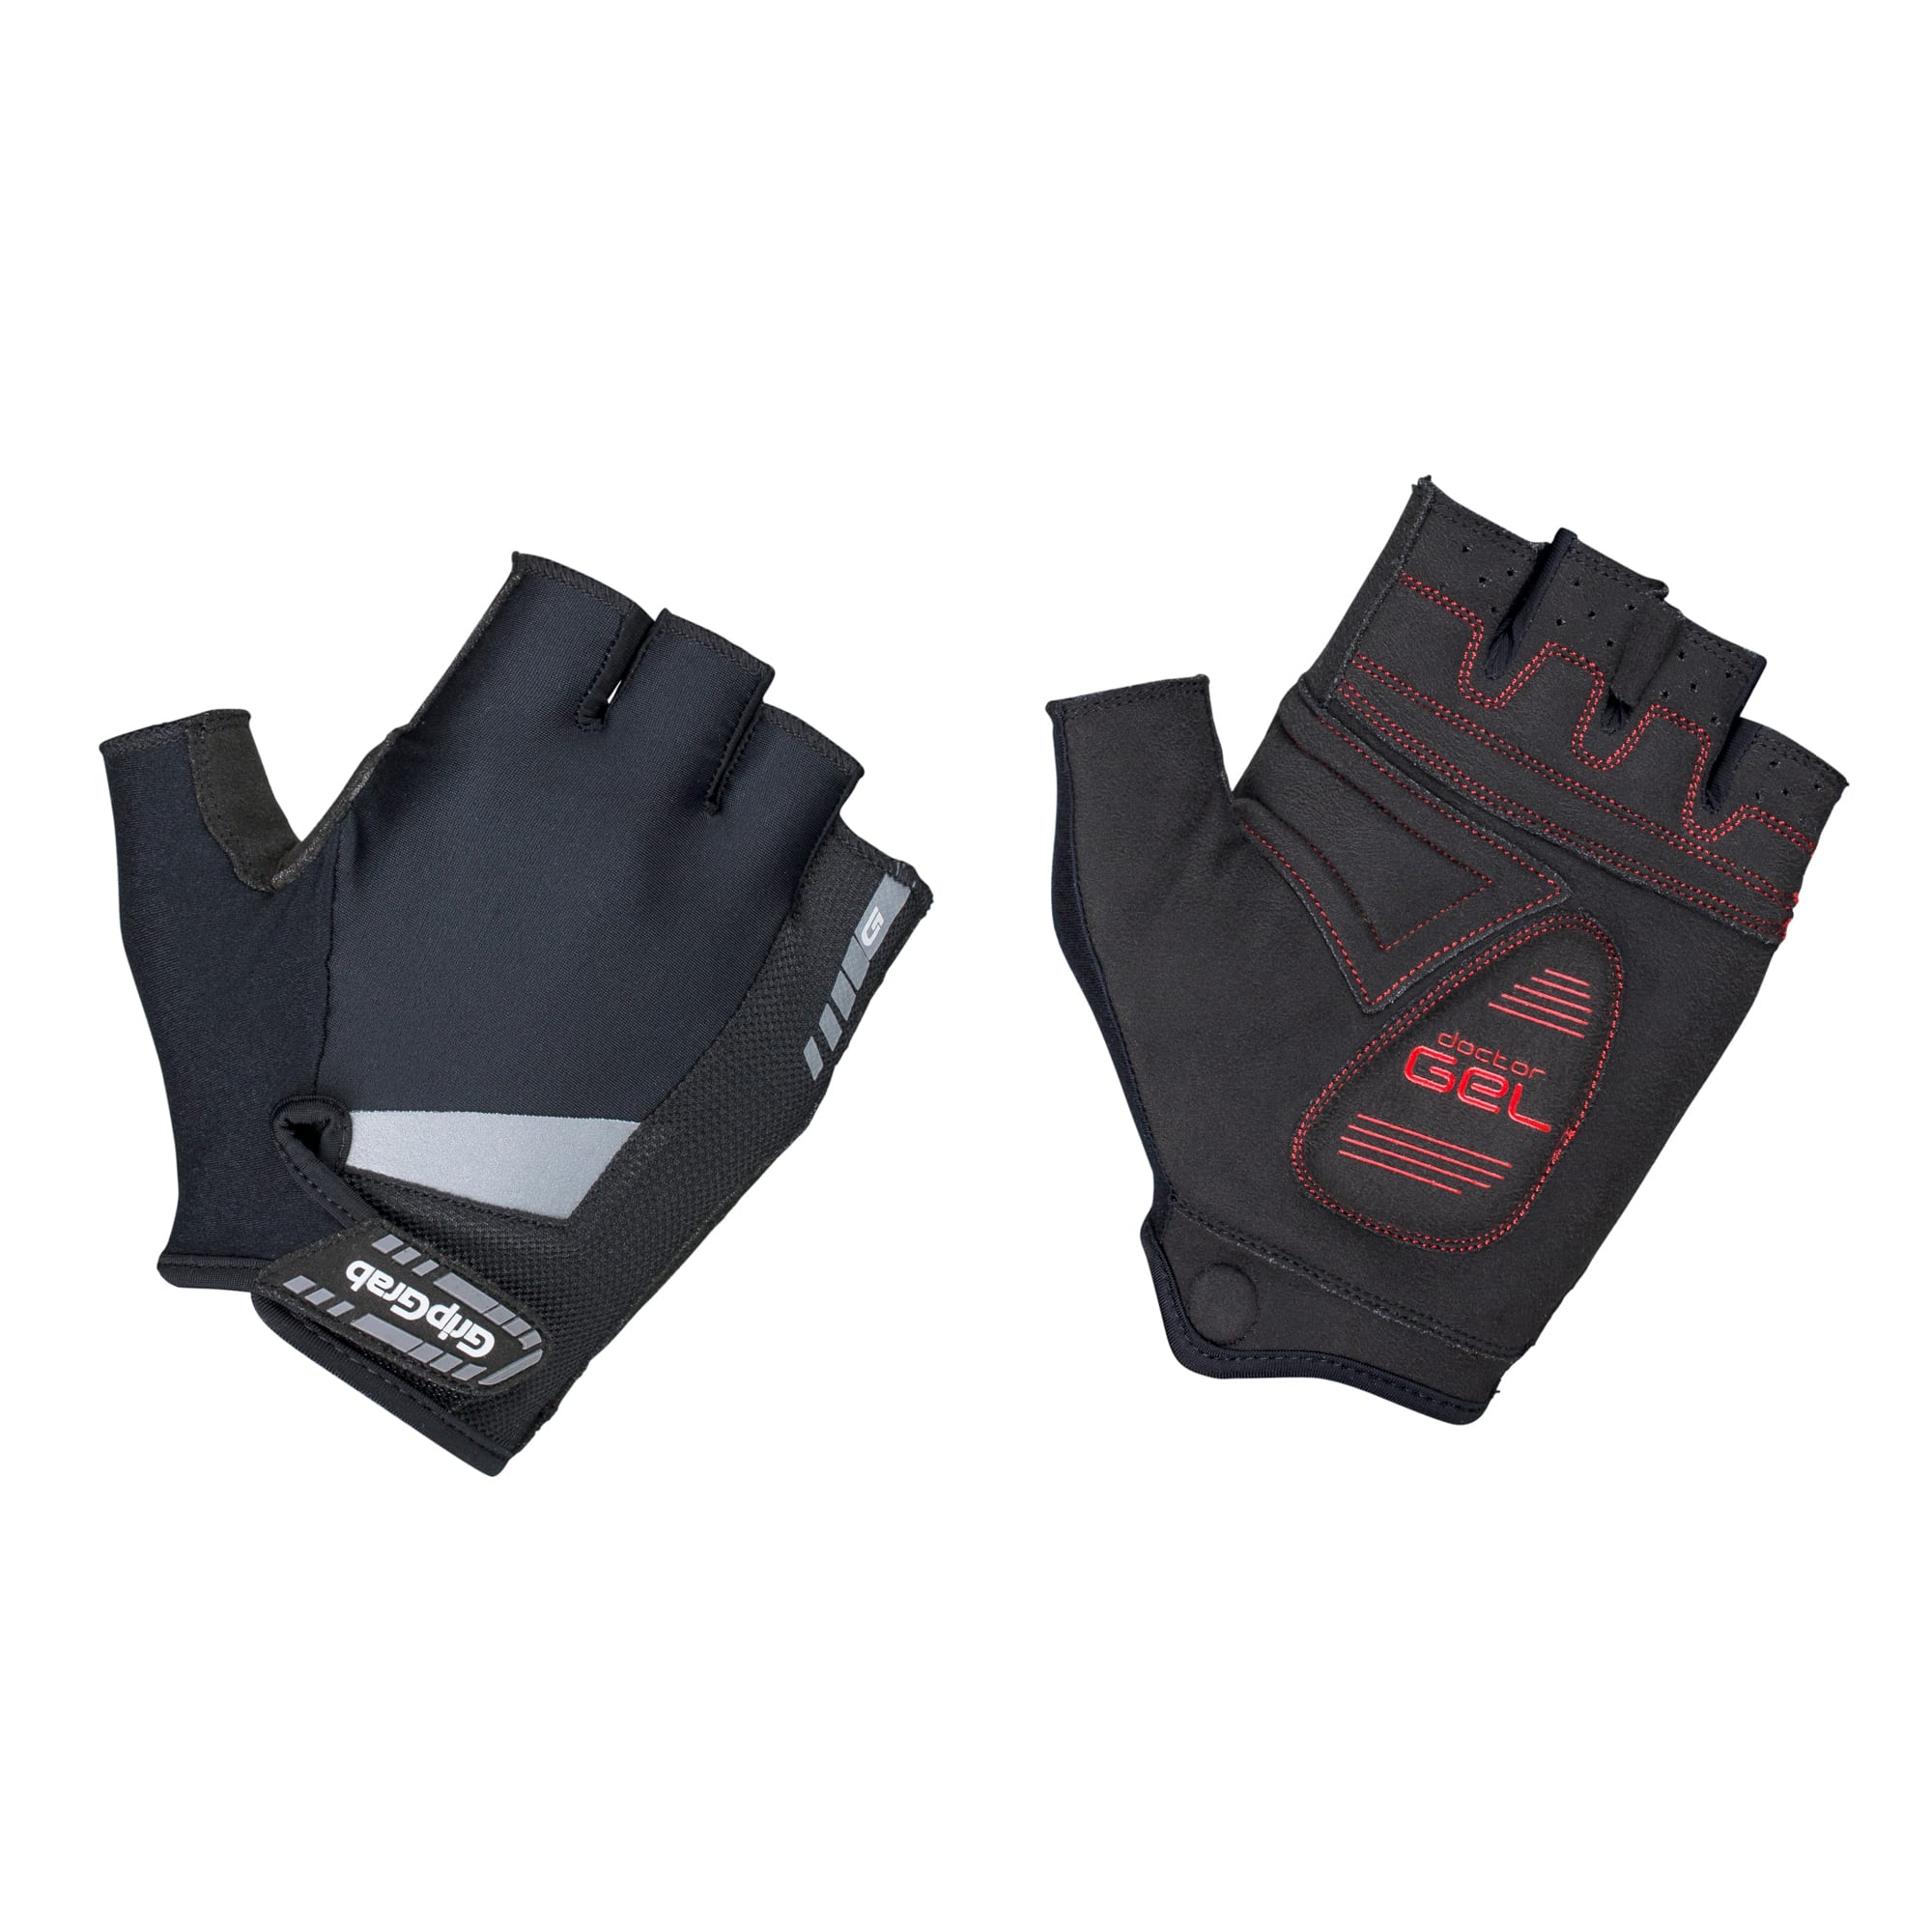 SuperGel Padded Short Finger Glove, GripGrab